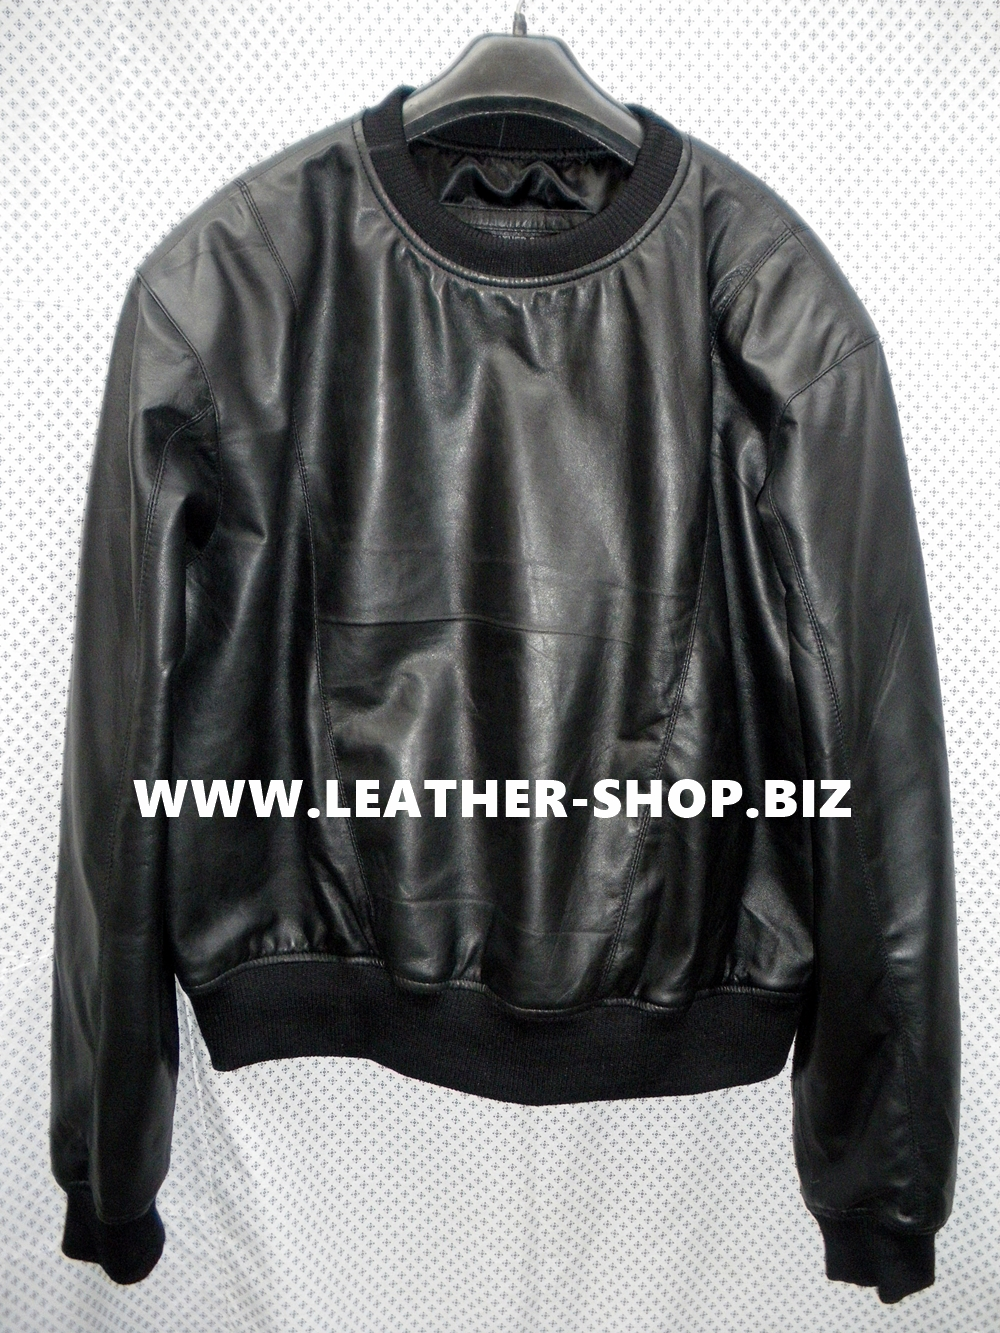 lambskin-leather-sweat-shirt-custom-made-style-lss005-www.leather-shop.biz-front.jpg